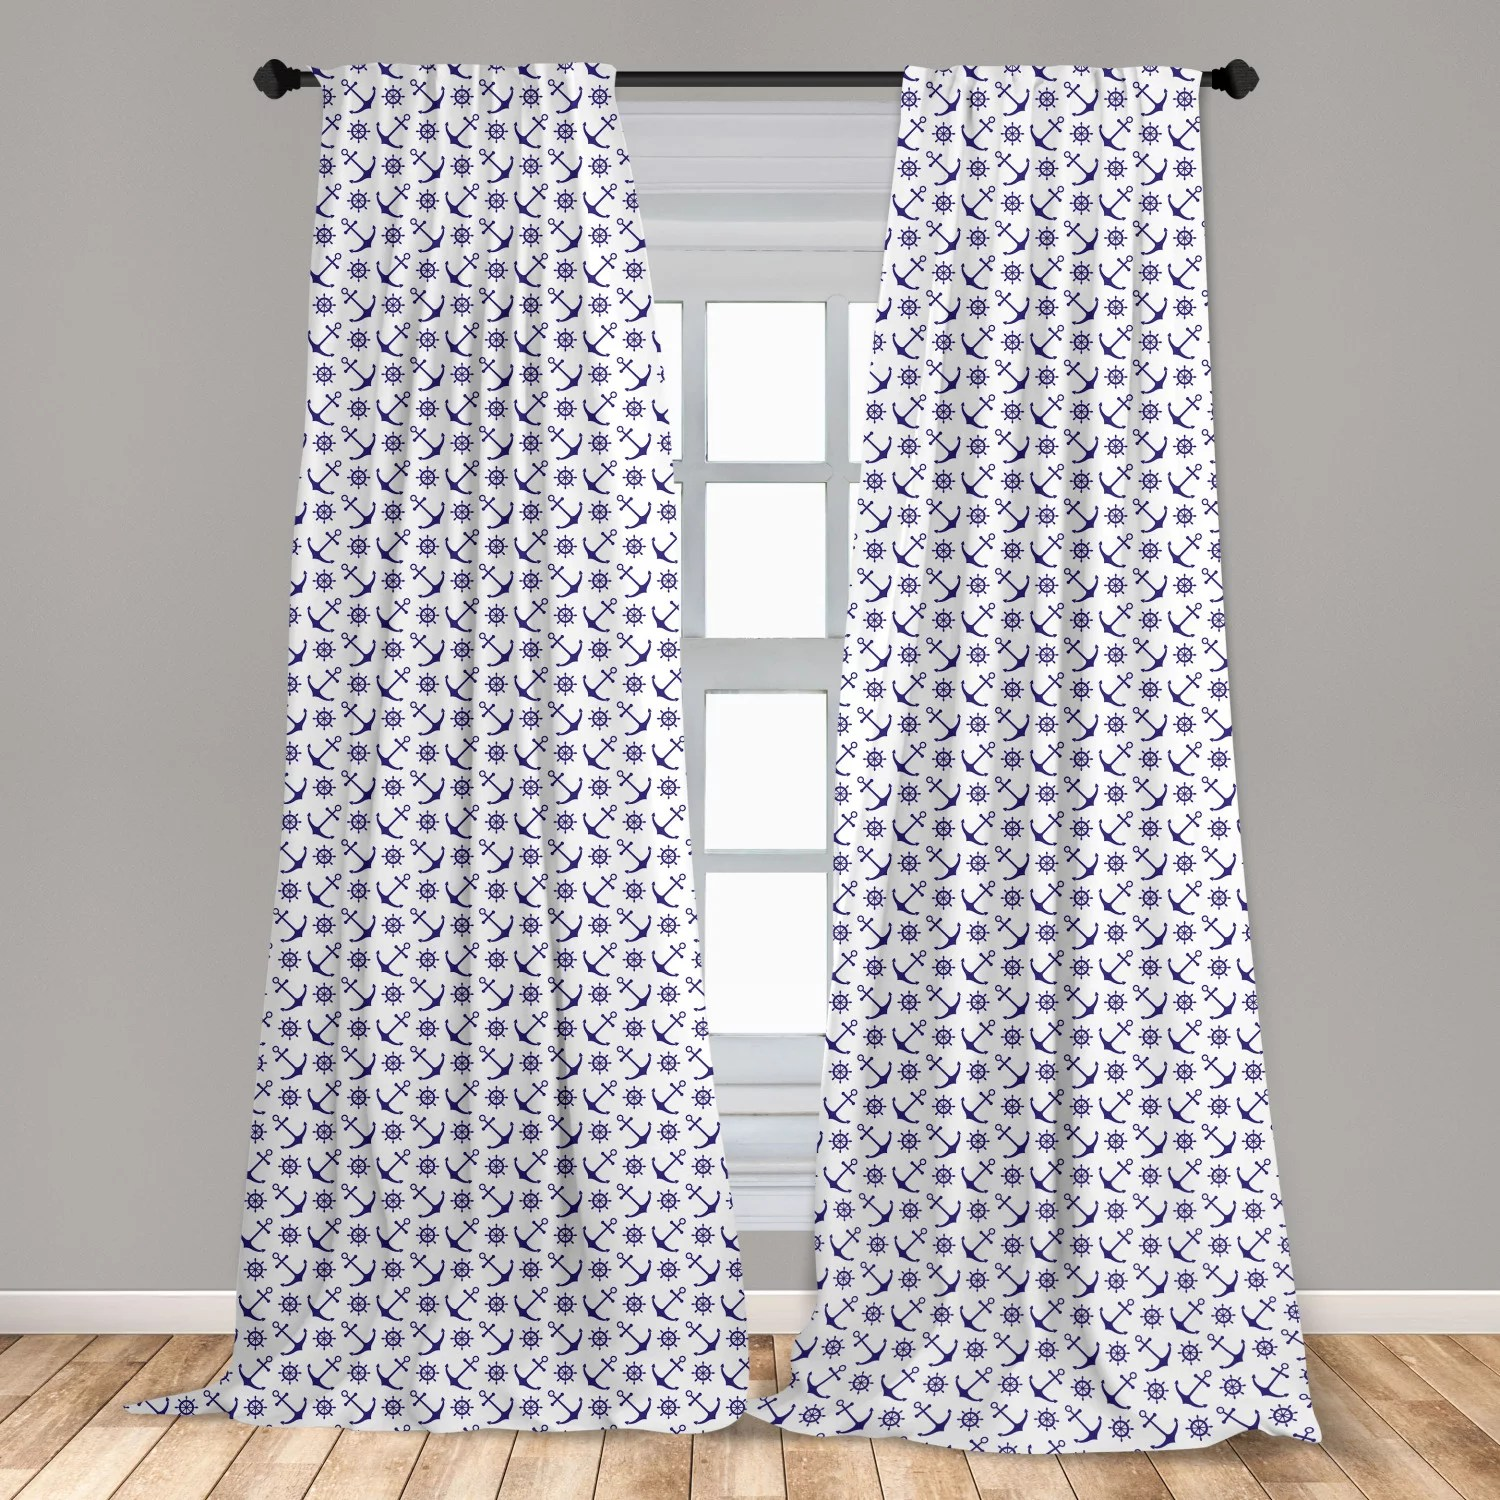 navy blue curtains 2 panels set anchors with ships steering wheels nautical composition sea life element window drapes for living room bedroom dark